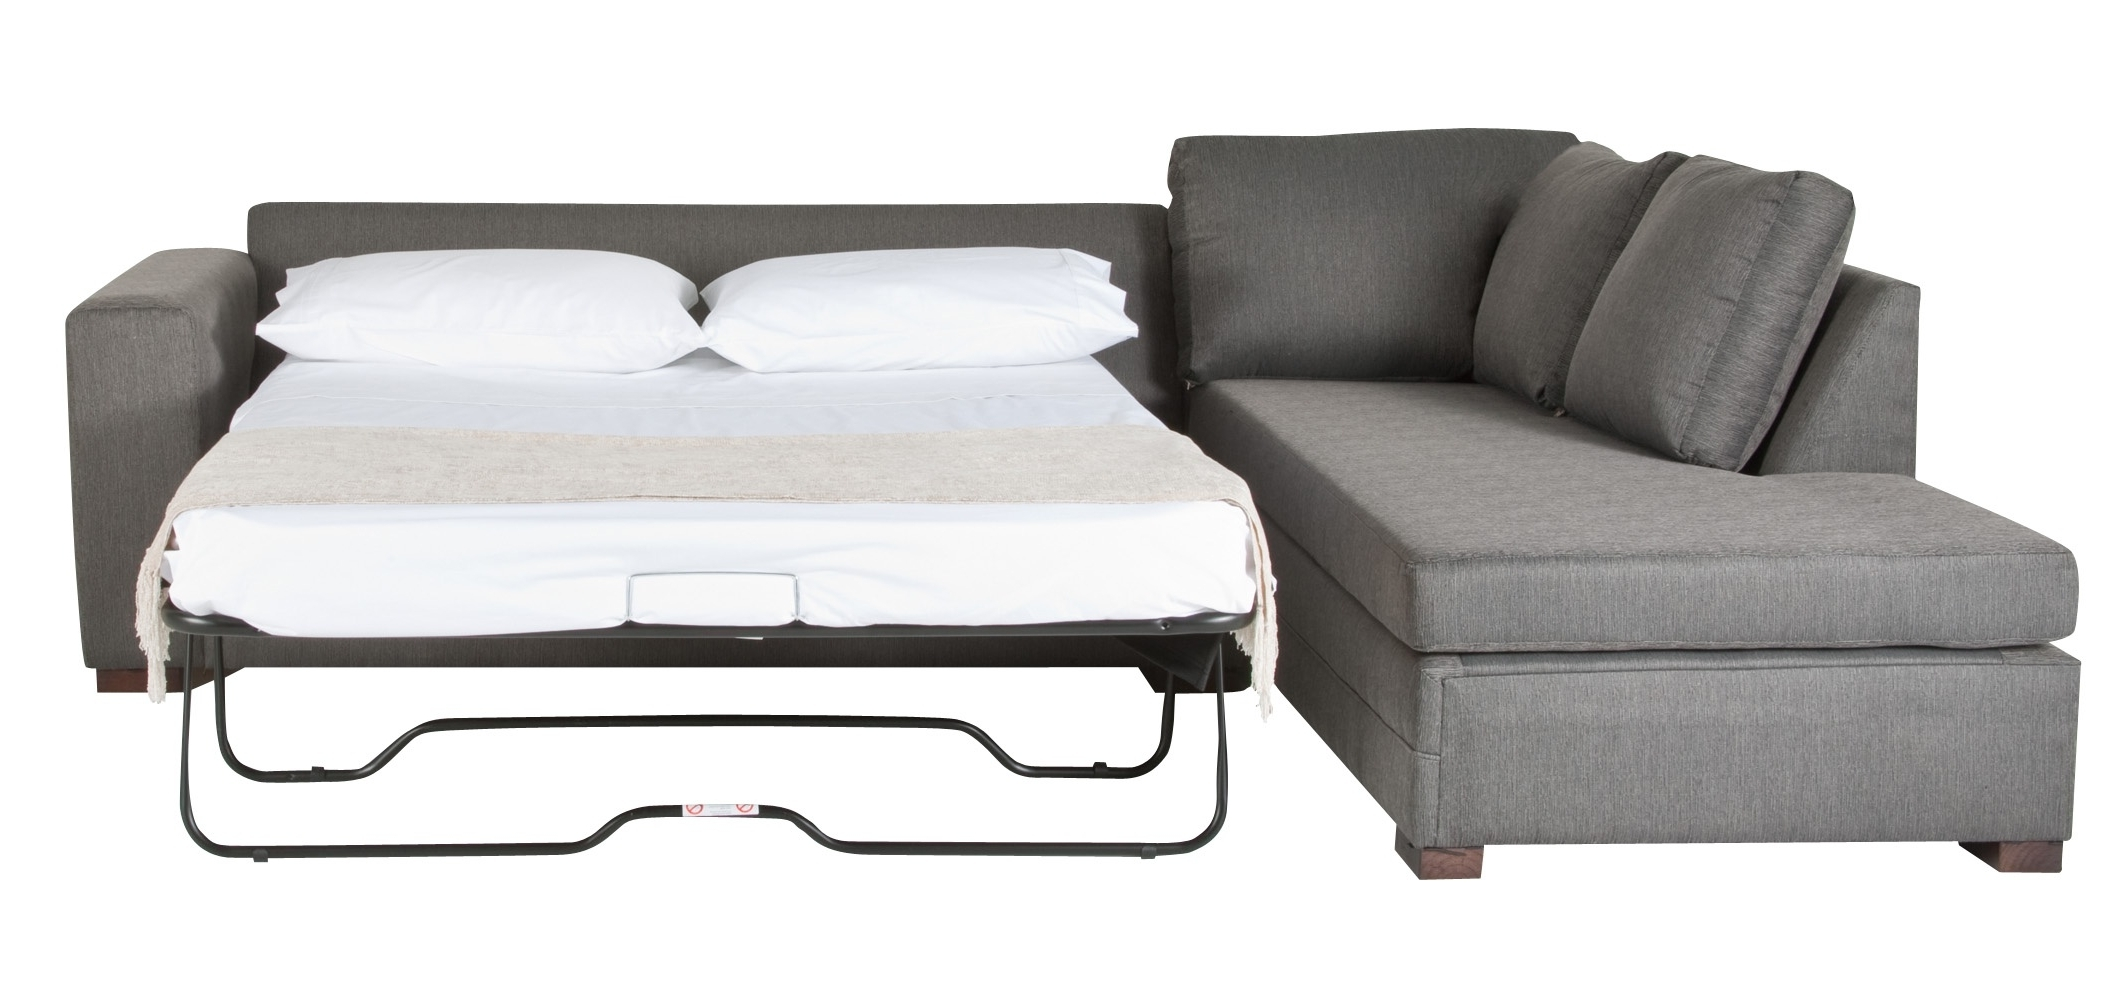 Sectional Sofas With Queen Size Sleeper Inside Favorite Sectional Pull Out Sleeper Sofa – Ansugallery (View 13 of 20)